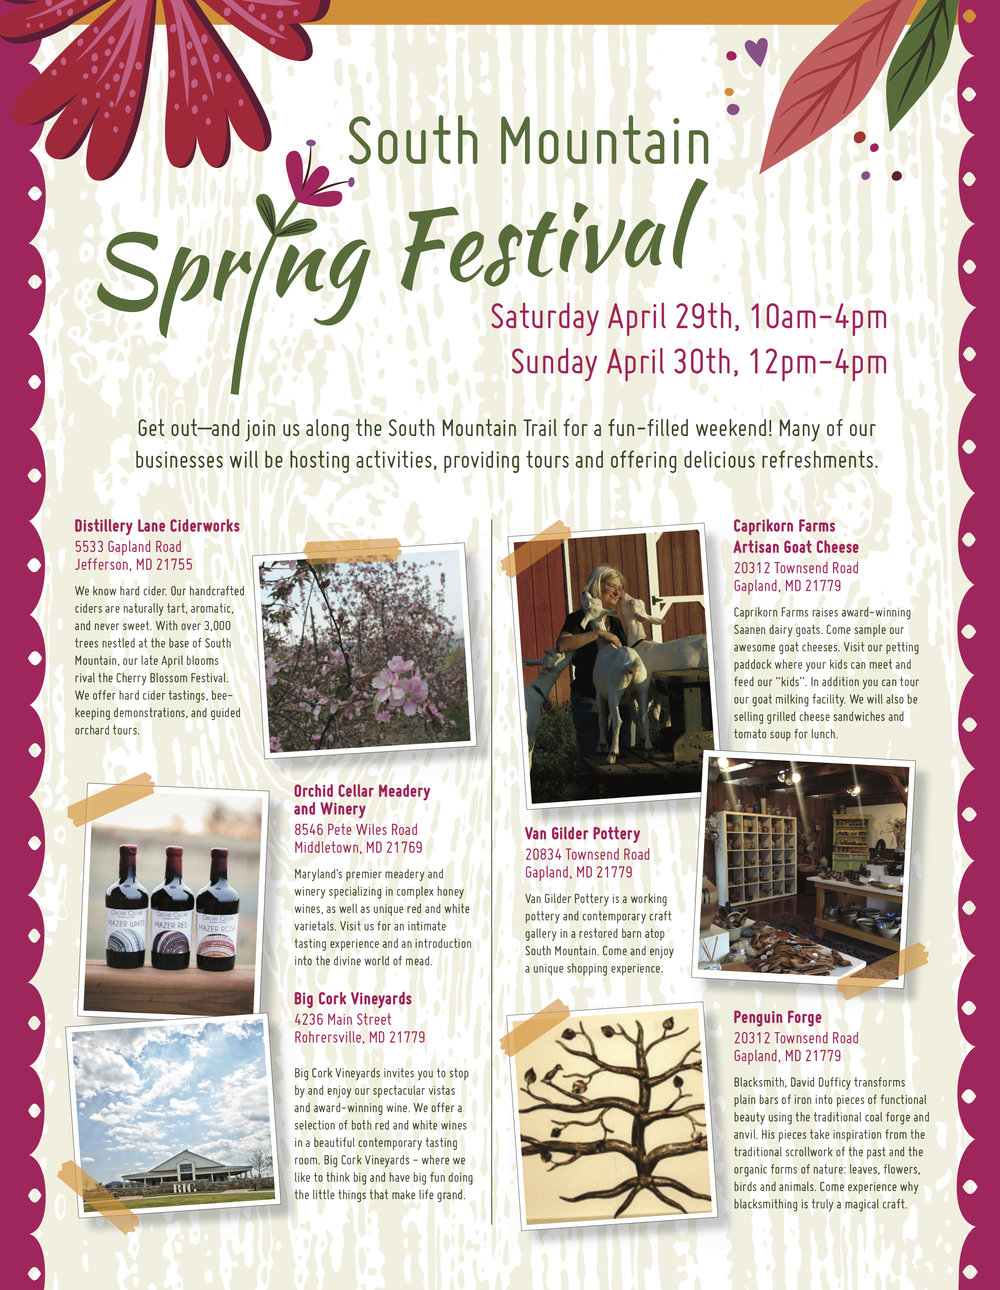 Vip these de lite ful orchid designs include 9 designs which can be - South Mountain Spring Festival